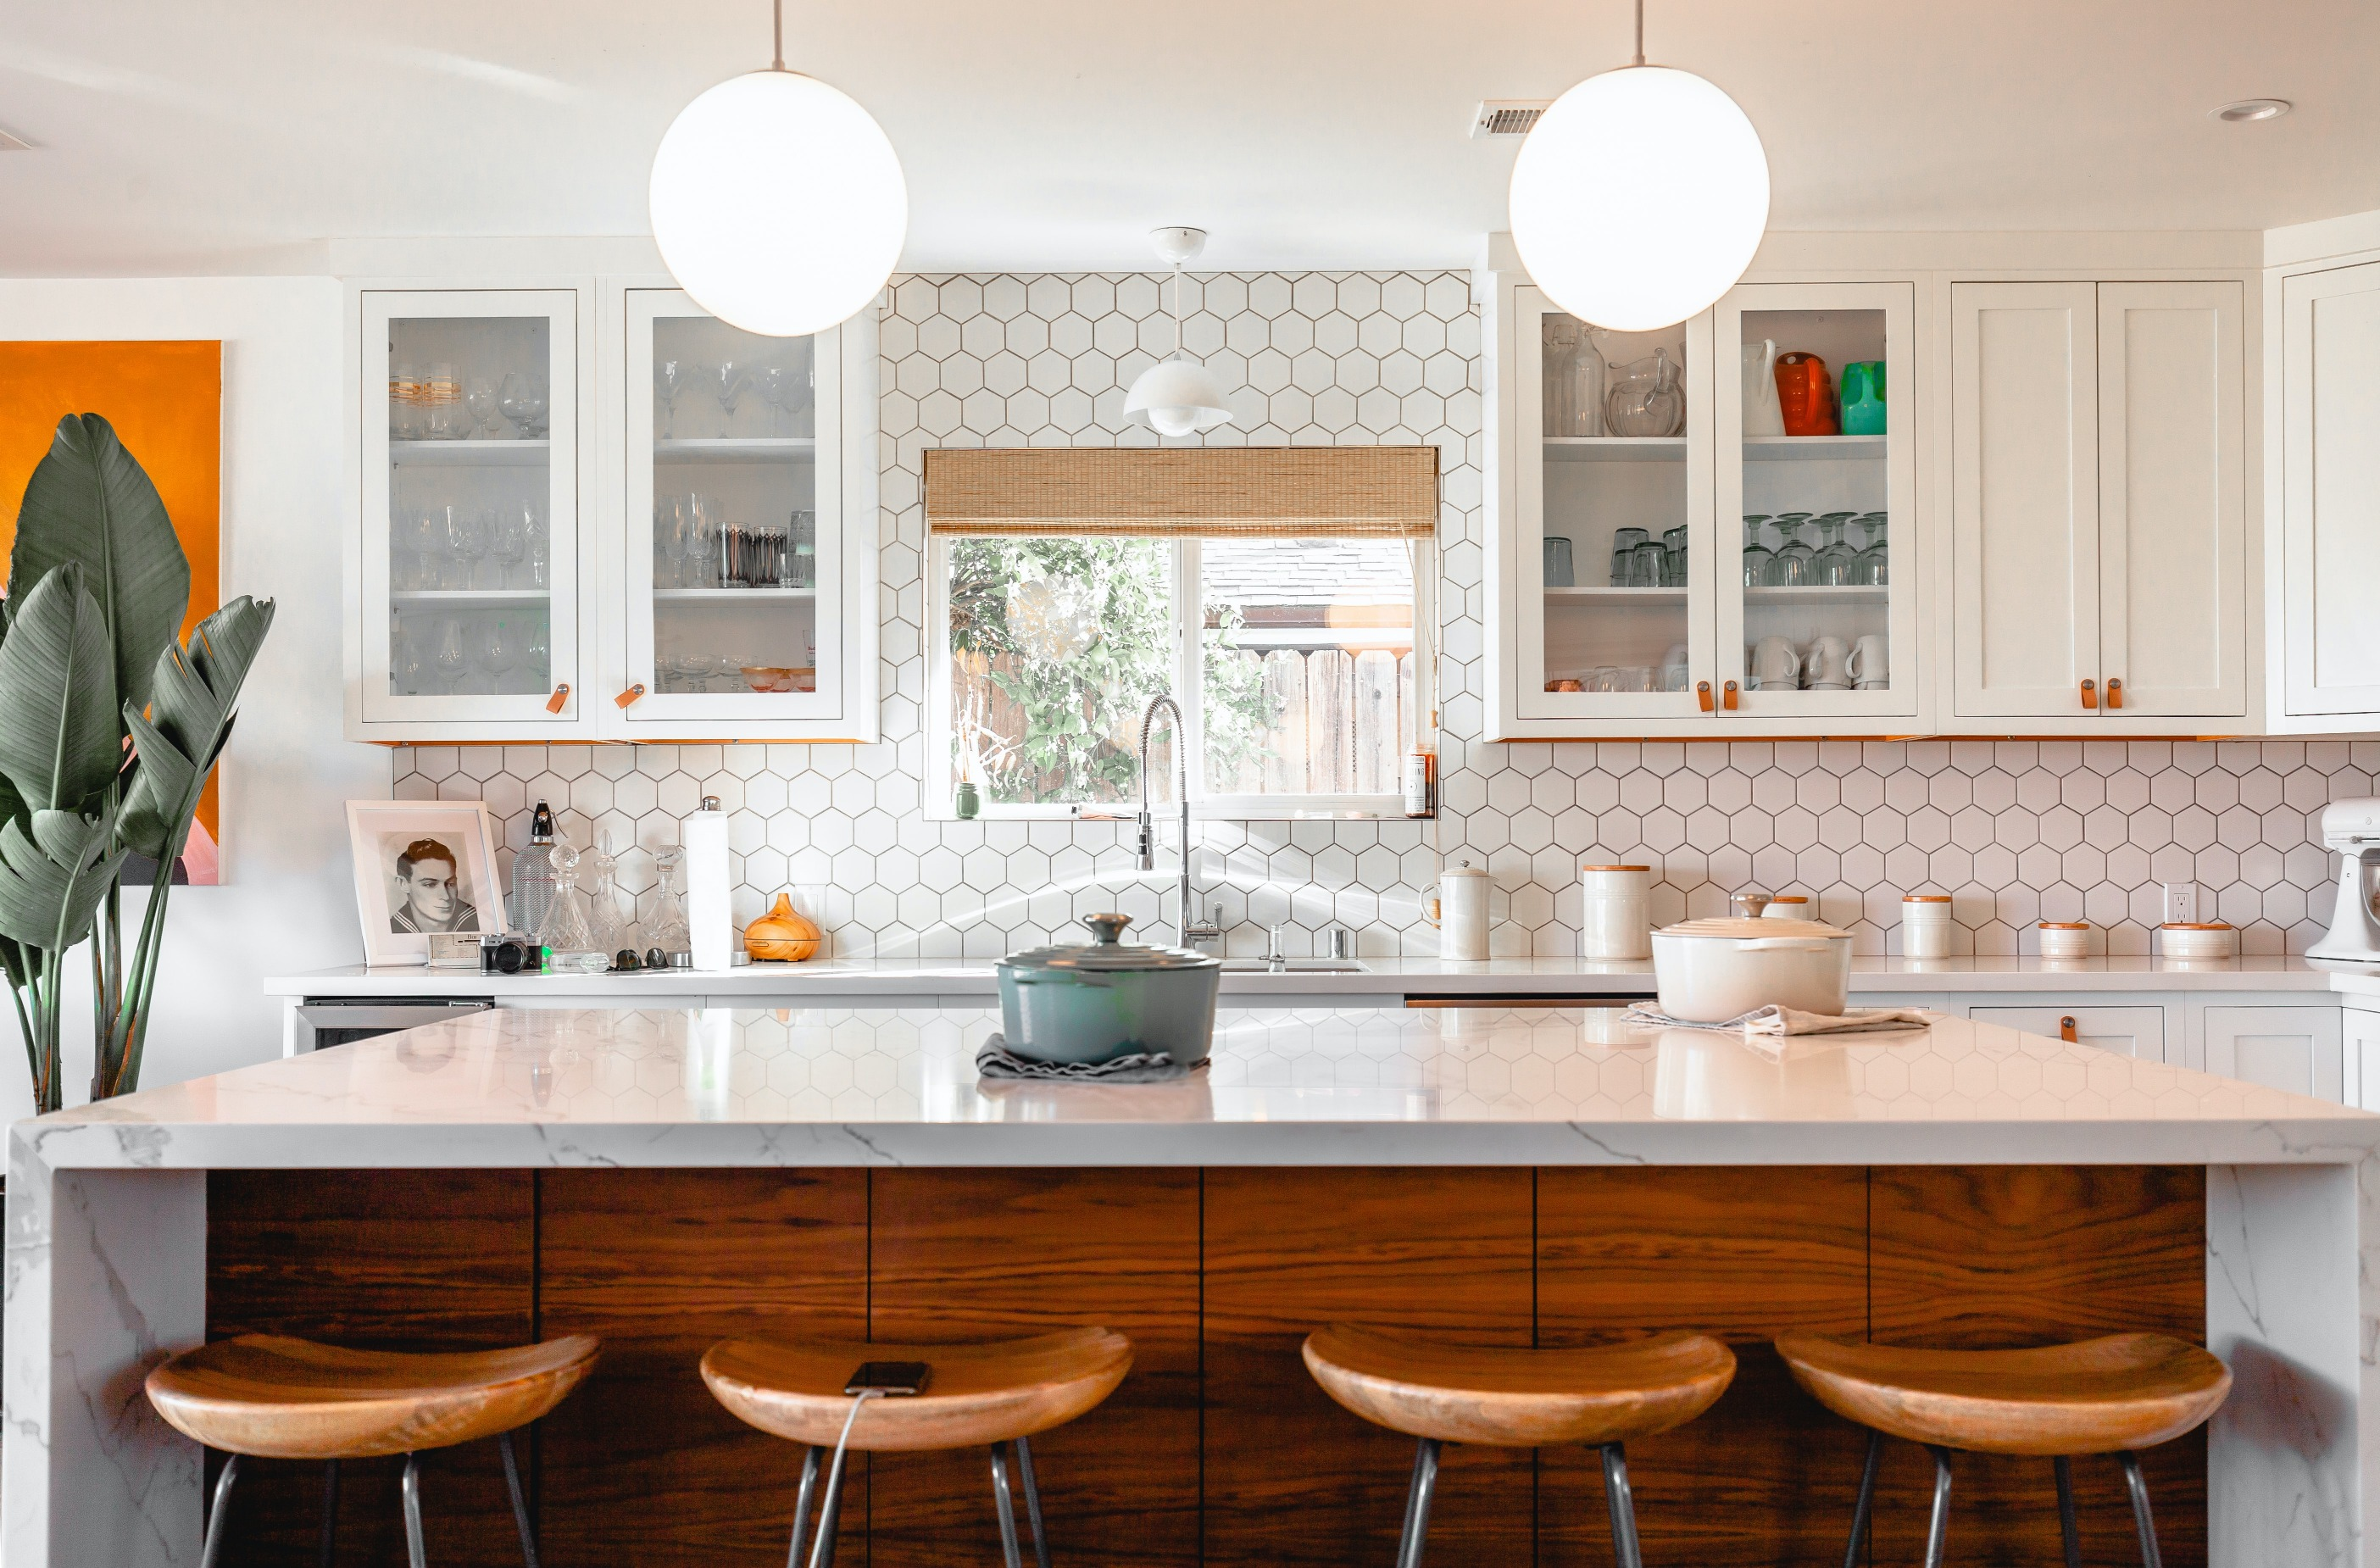 15 Kitchen Trends For 2021 New Kitchen Design Ideas